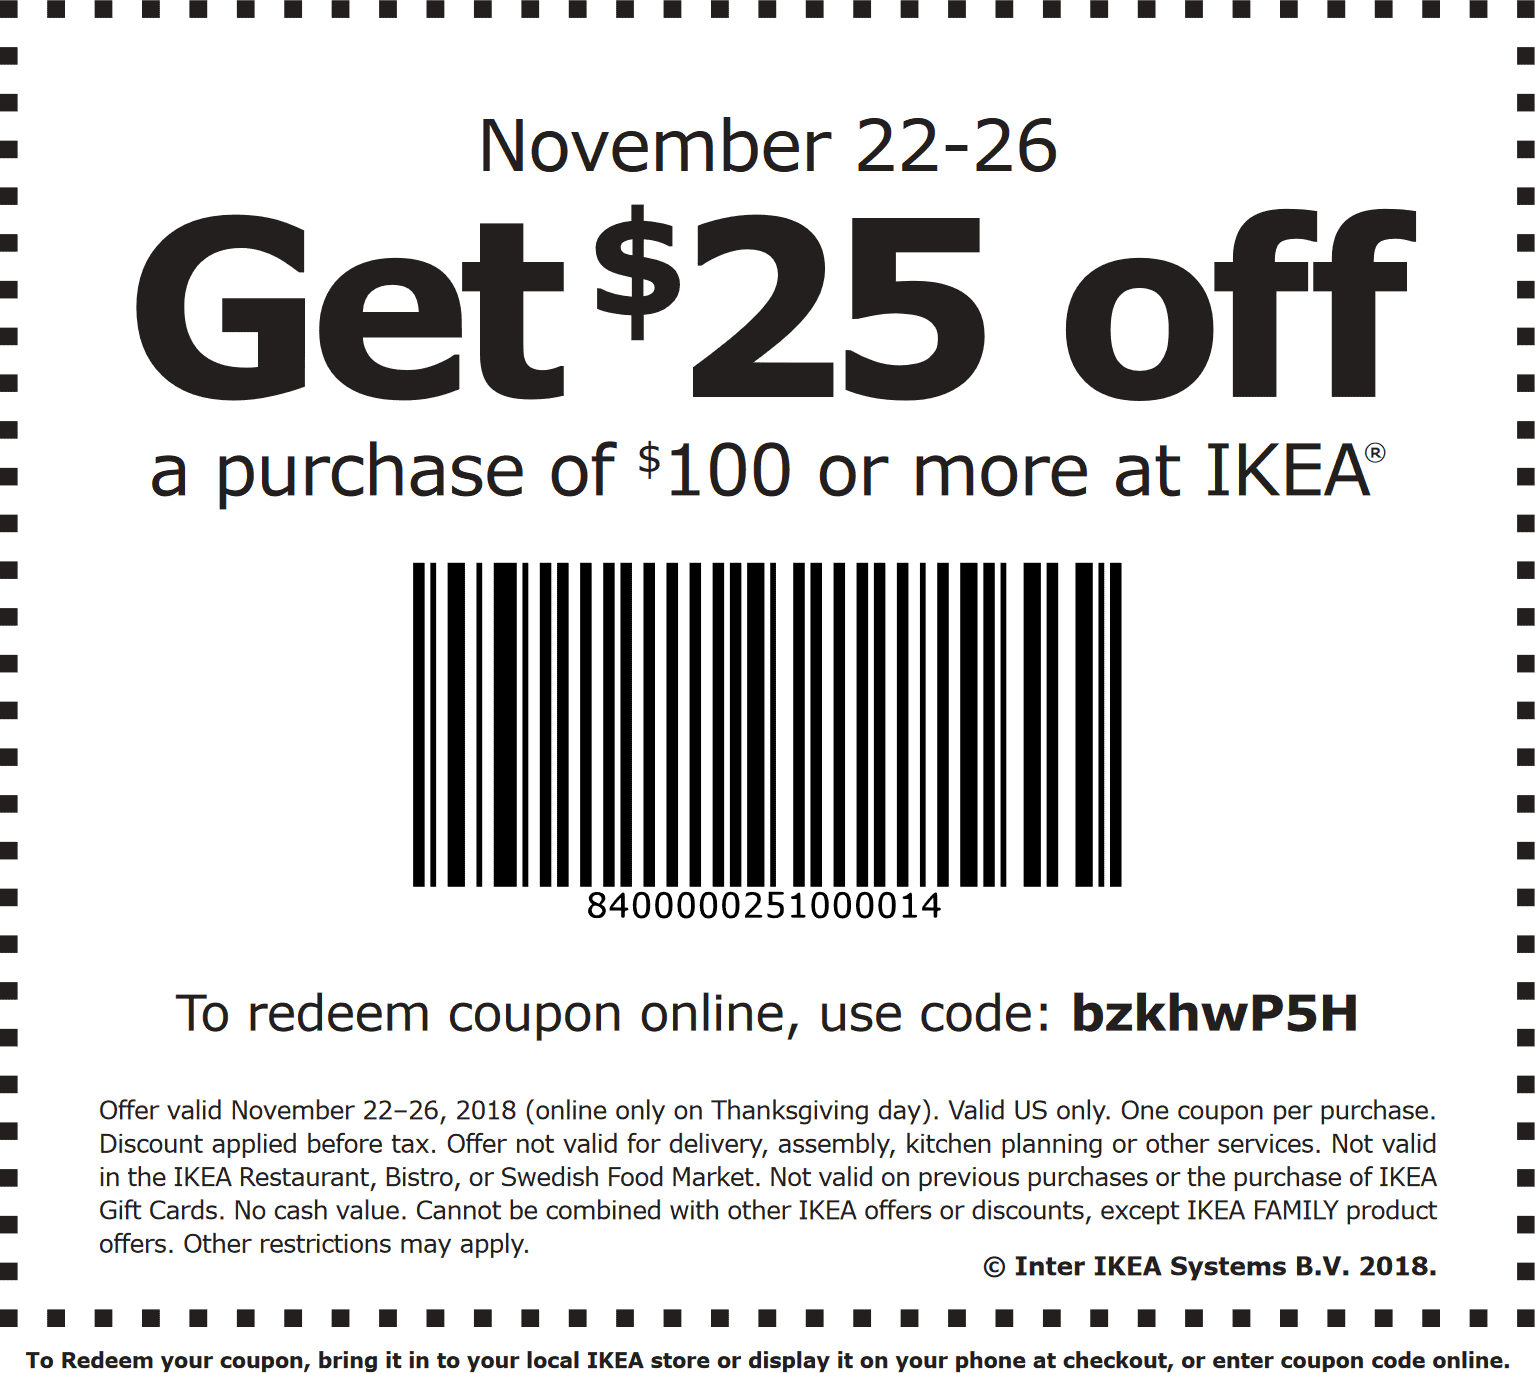 IKEA Coupon January 2020 $25 off $100 at IKEA, or online via promo code bzkhwP5H